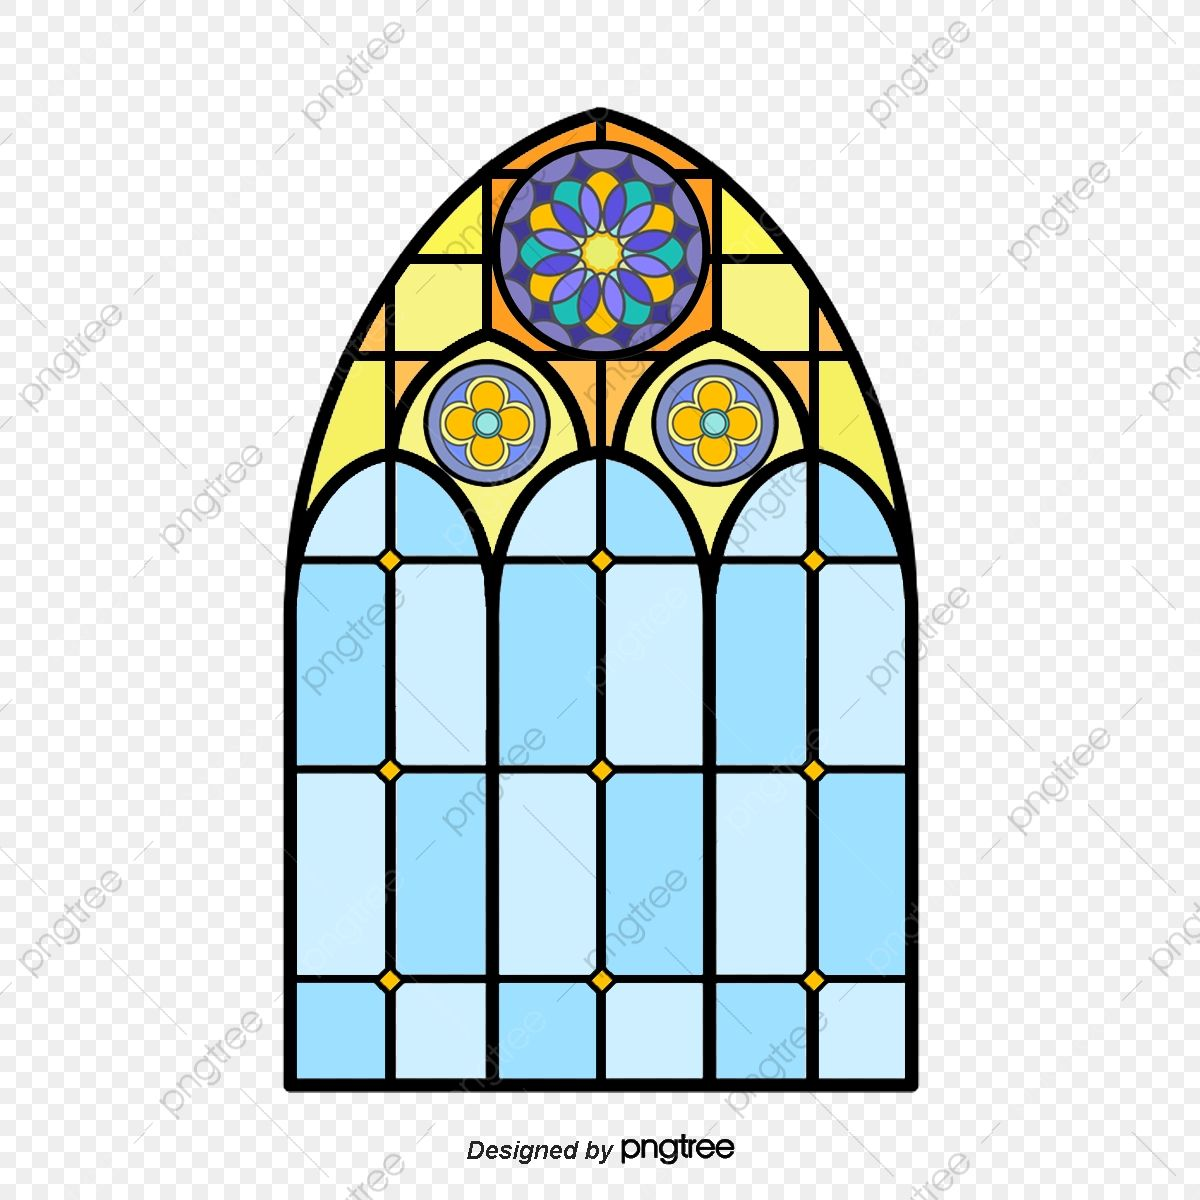 Multicolored Classical Gothic Painted Glass Church Classical Gothic Stained Glass Png Transparent Clipart Image And Psd File For Free Download Geometric Background Clipart Images Painting